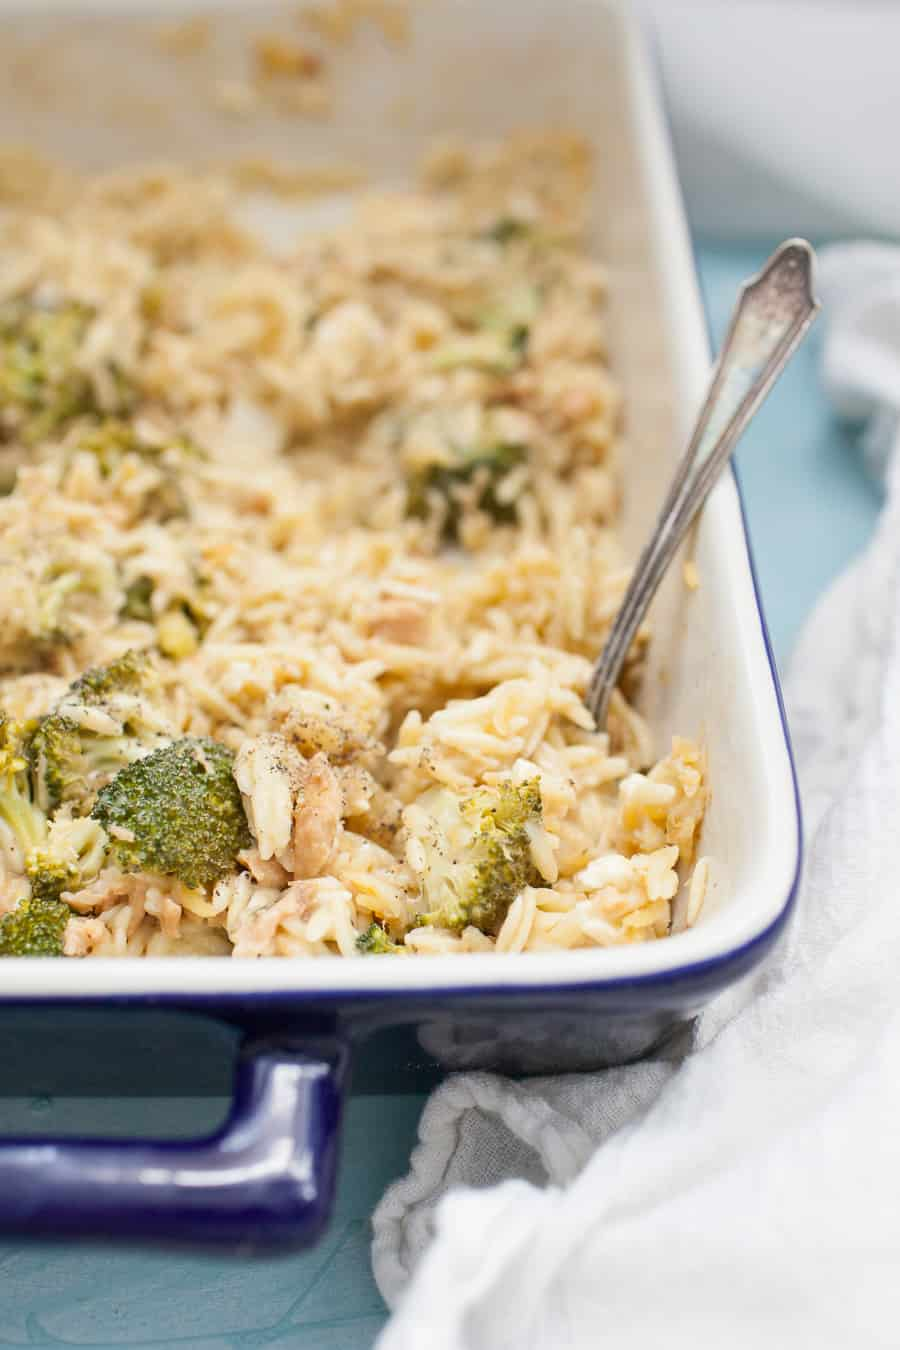 This quick Chicken Broccoli Orzo Casserole is the perfect weeknight dinner solution that you can throw together in a hurry. It has everything you need in it: orzo pasta, broccoli, feta cheese and chicken. It's made with cream of celery soup, broth and spices to bring everything together in 30 minutes!